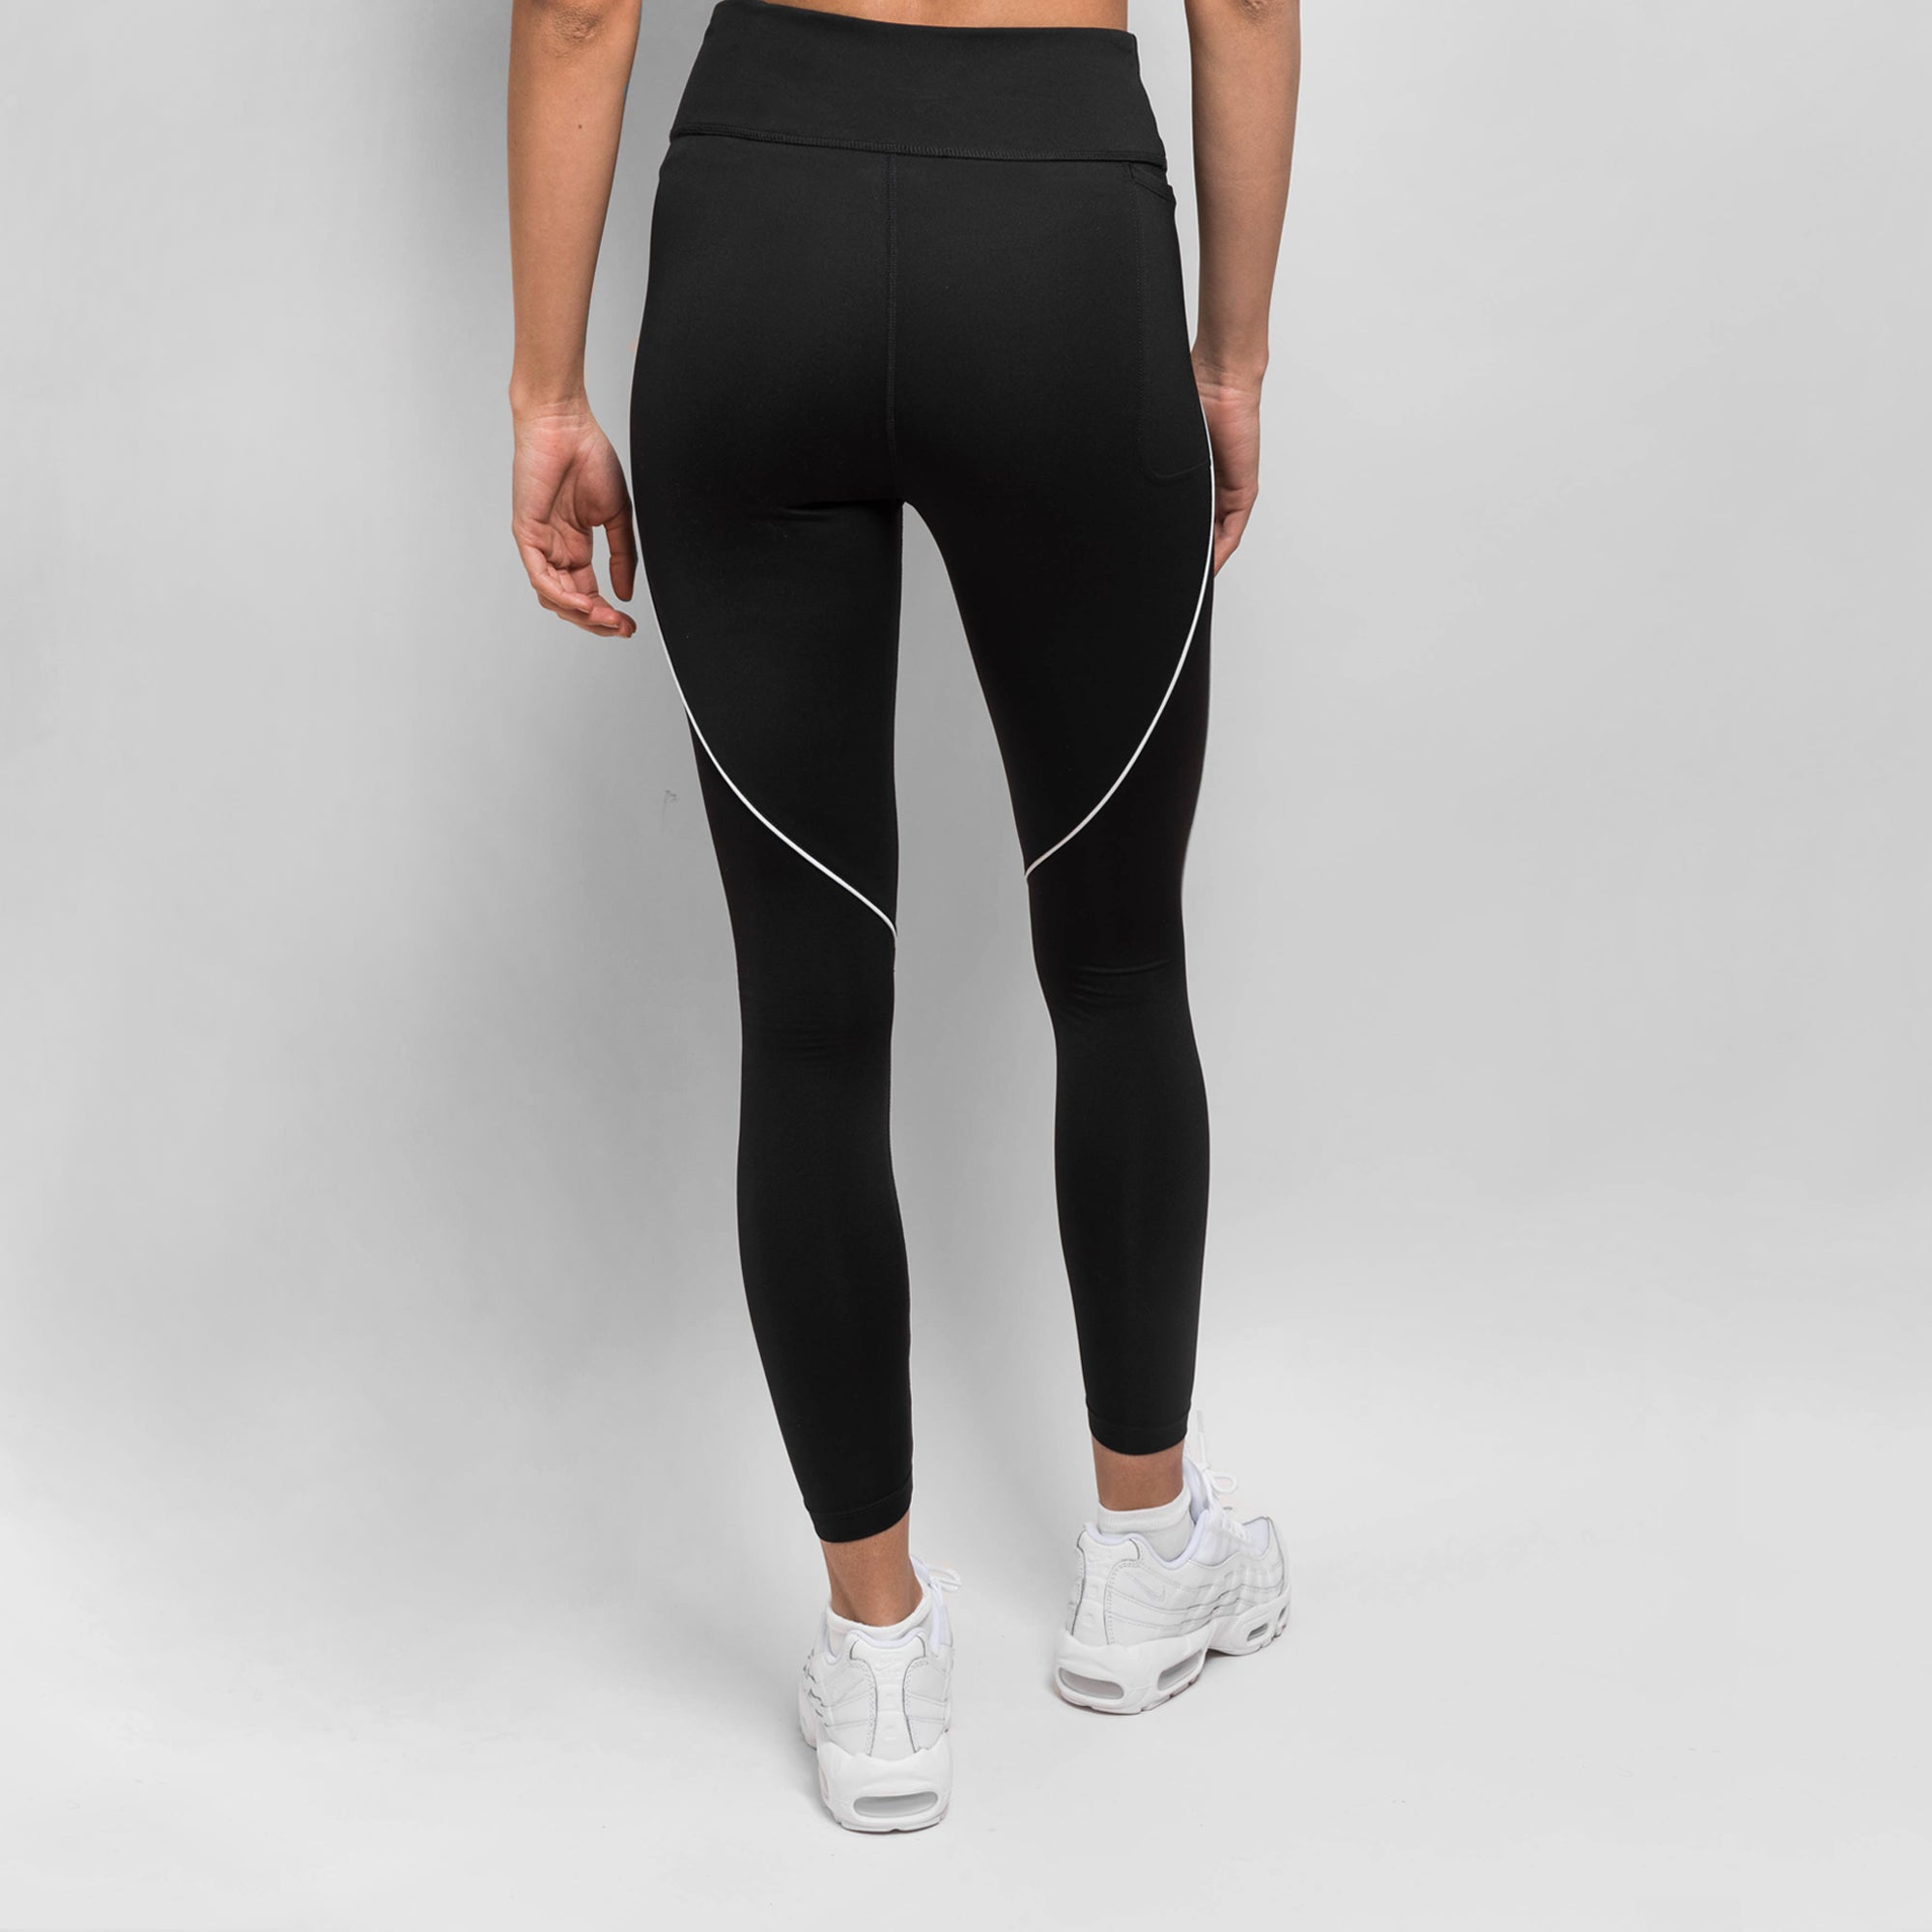 Kith Racing Cassie Tight - Black / White